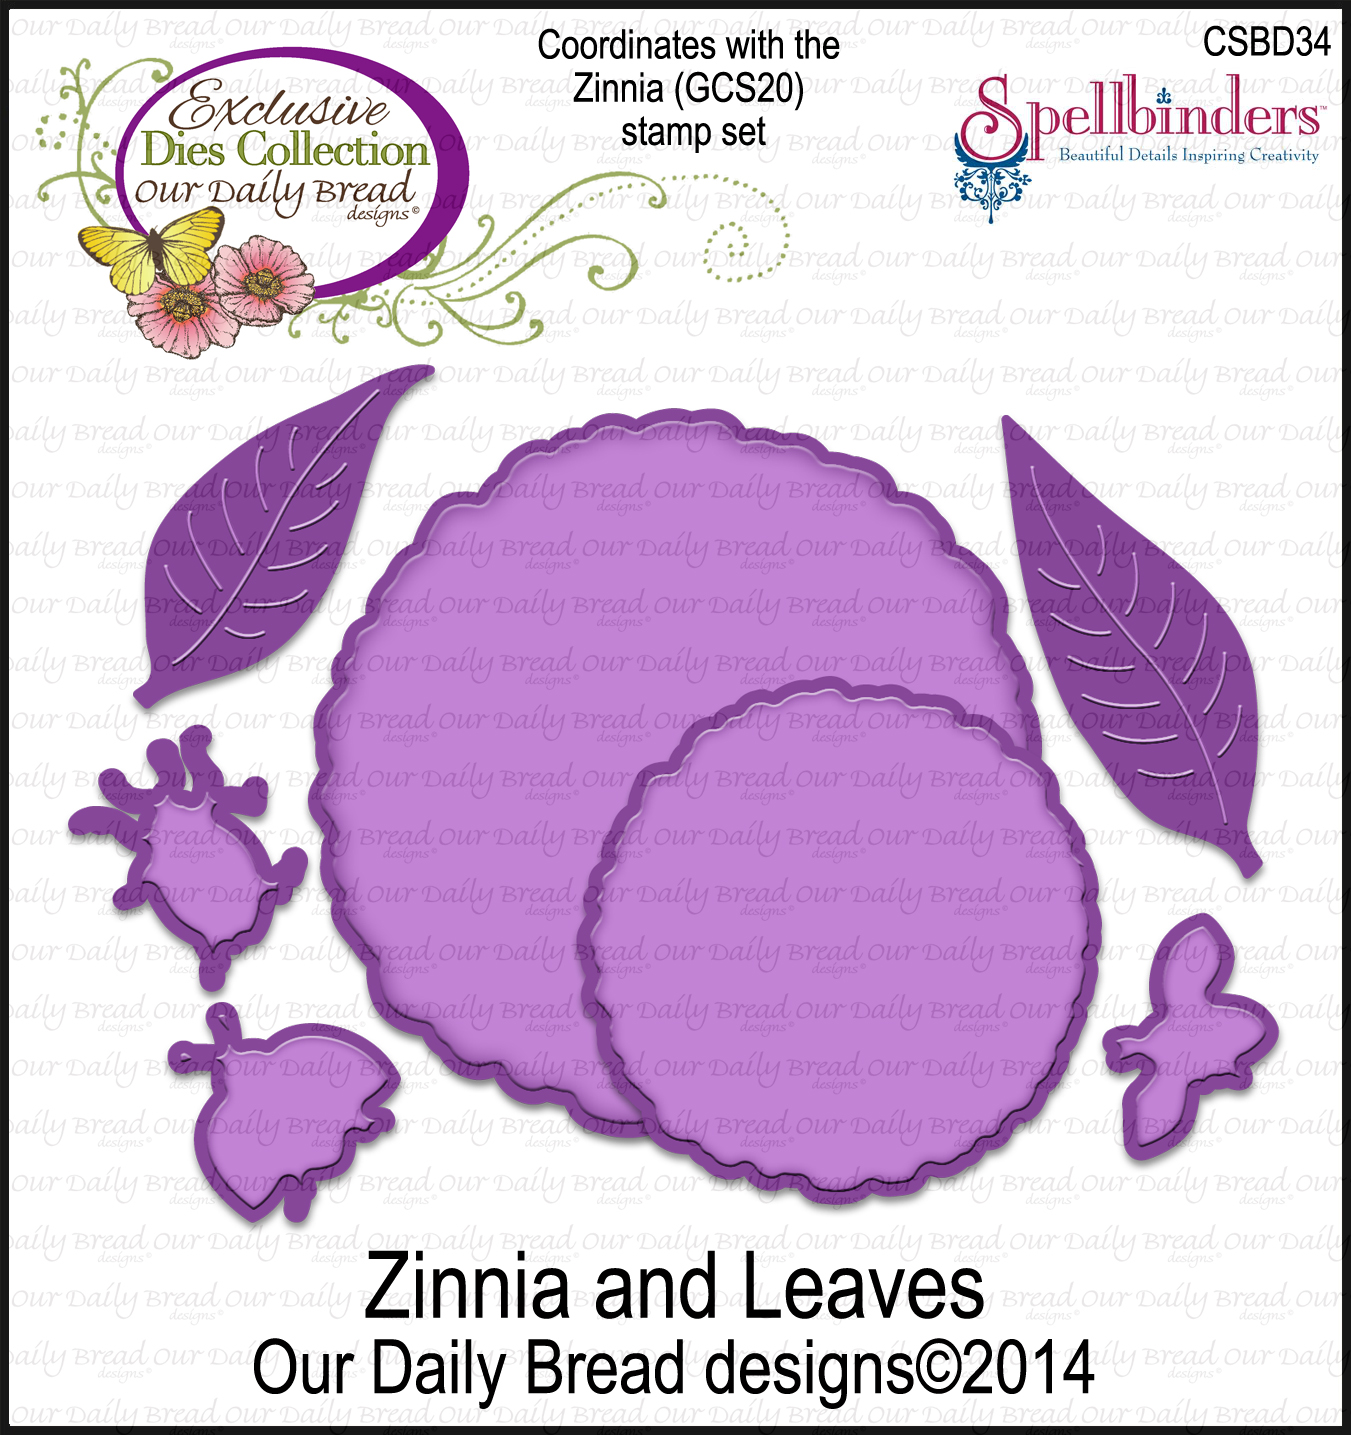 Our Daily Bread Designs Custom Zinnia and Leaves Dies